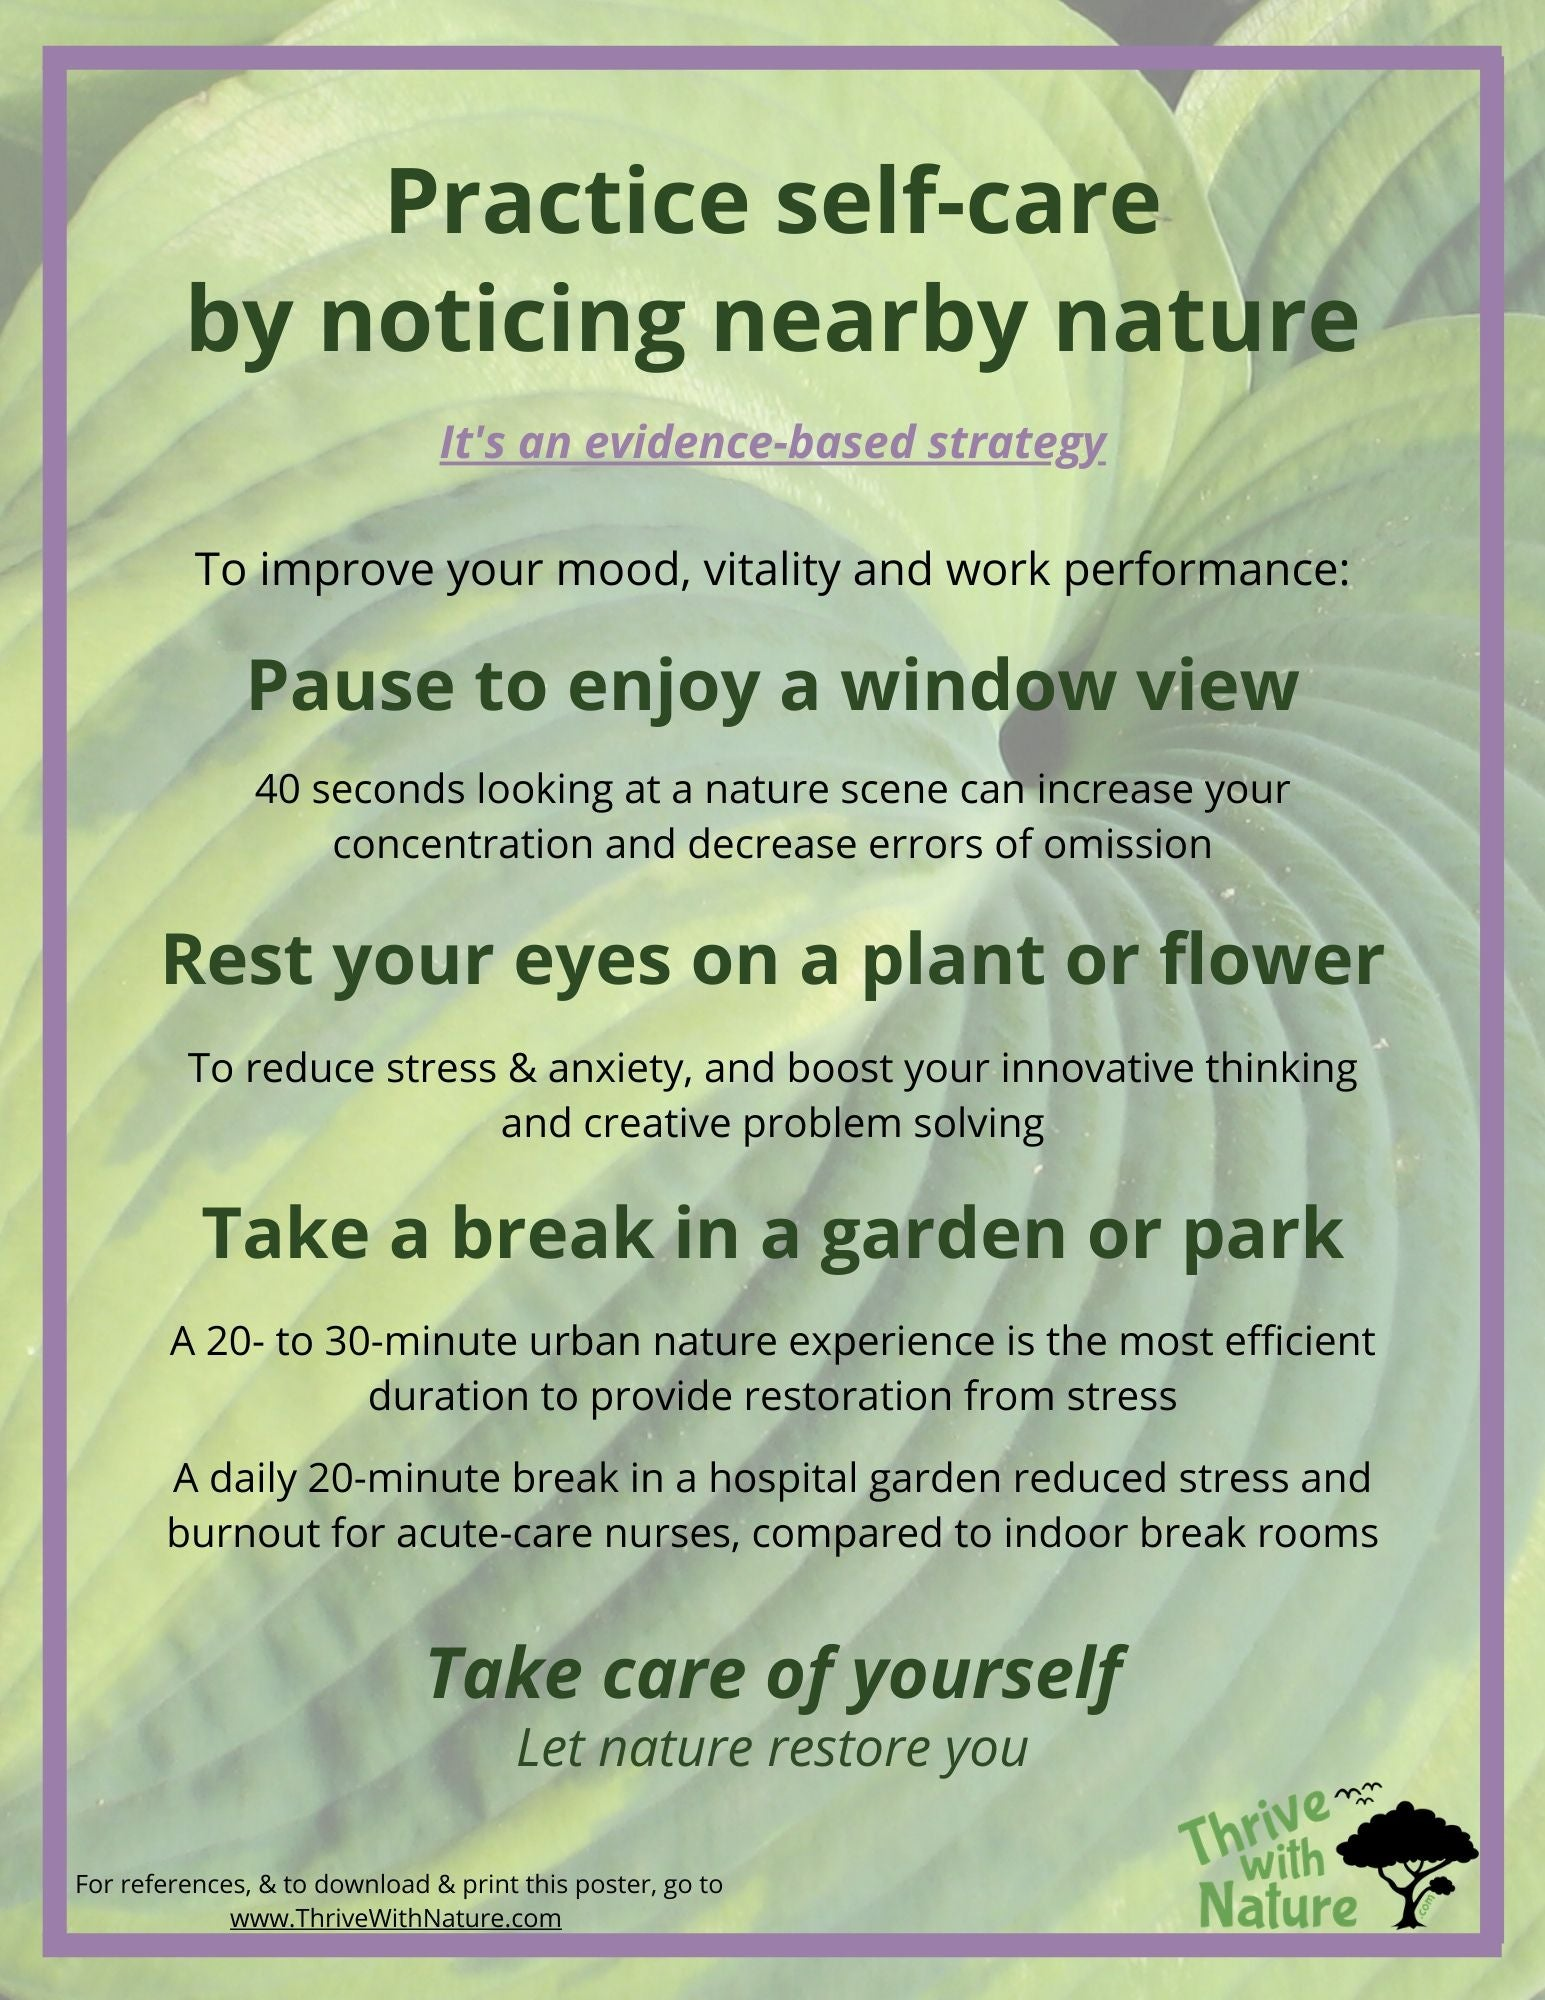 Poster: Practice self-care by noticing nearby nature. It's an evidence-based strategy for healthcare professionals and others